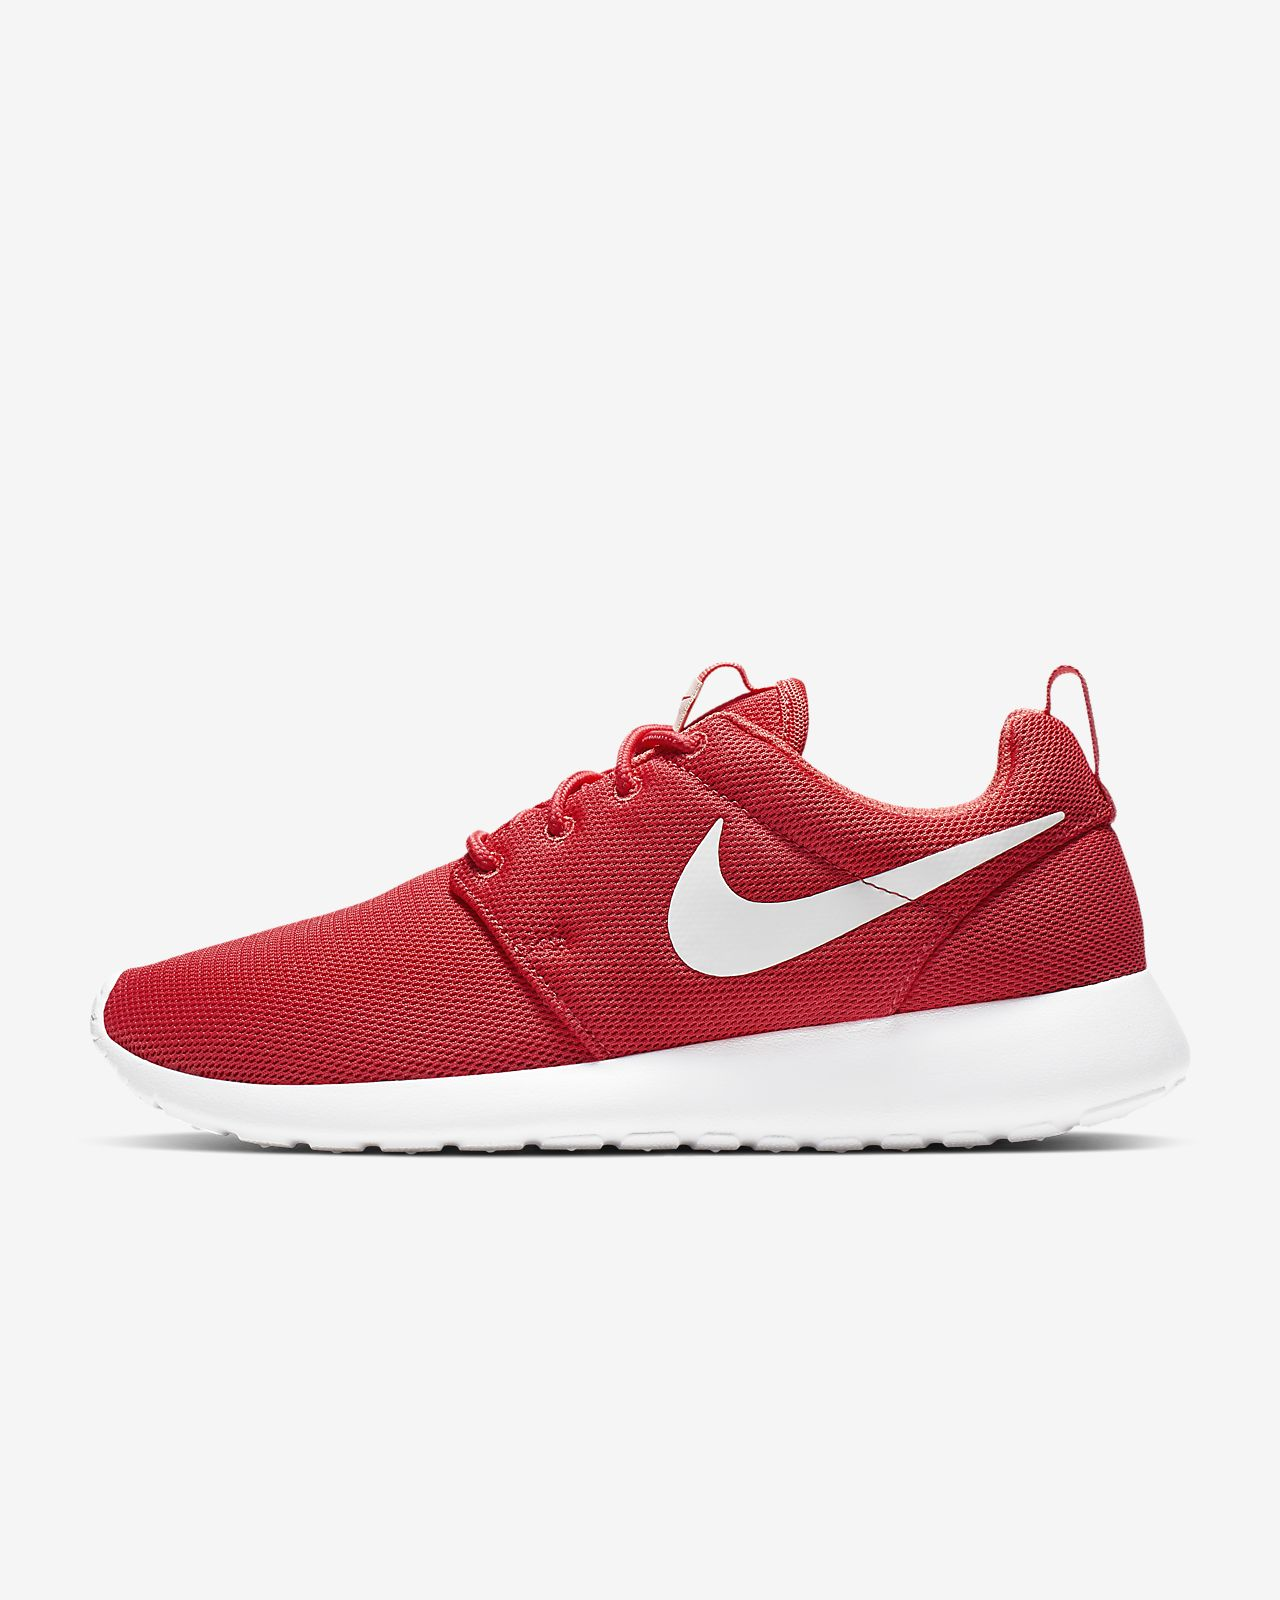 premium selection cef1f 56138 ... Nike Roshe One Women s Shoe